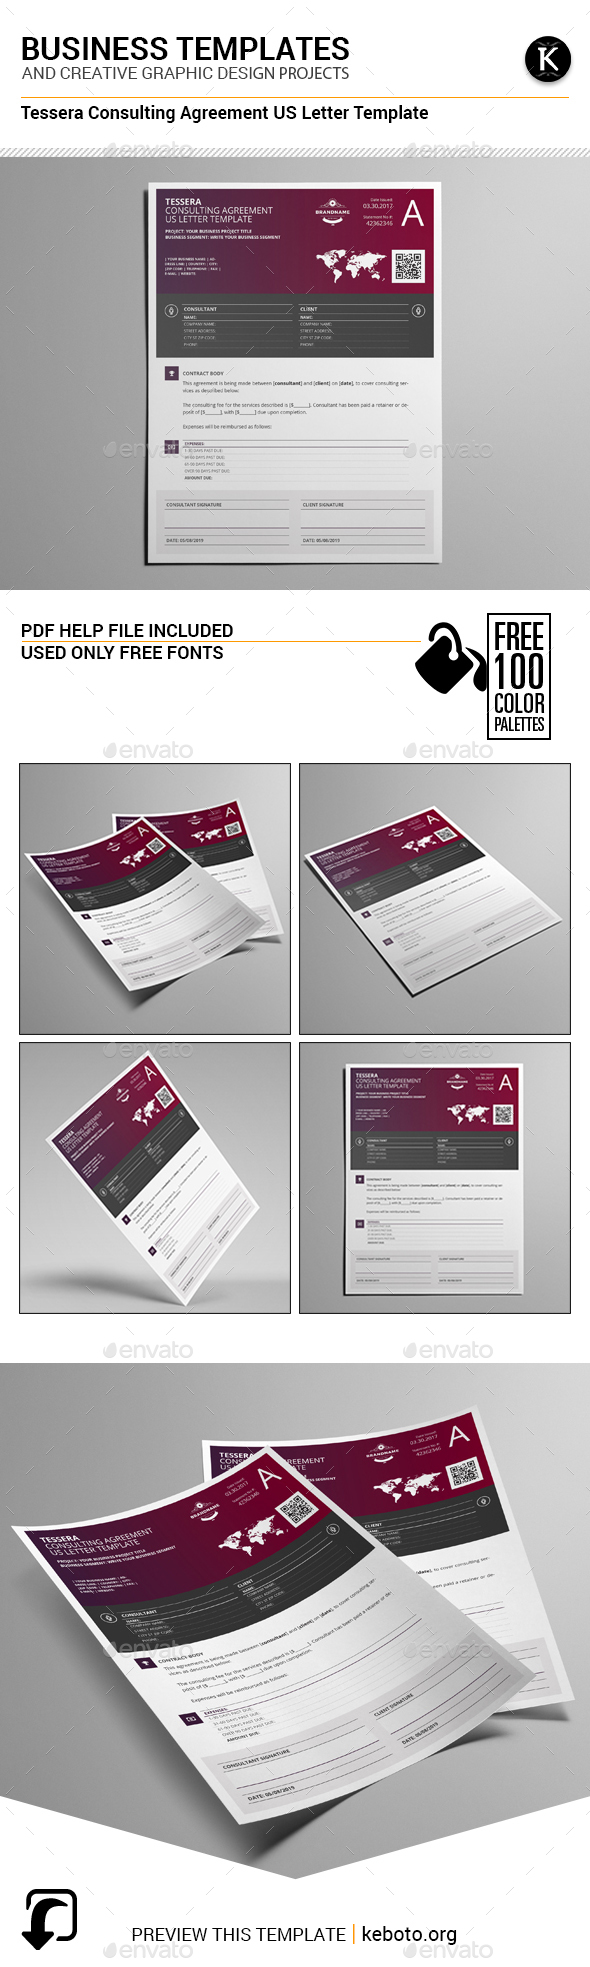 Tessera Consulting Agreement US Letter Template - Miscellaneous Print Templates